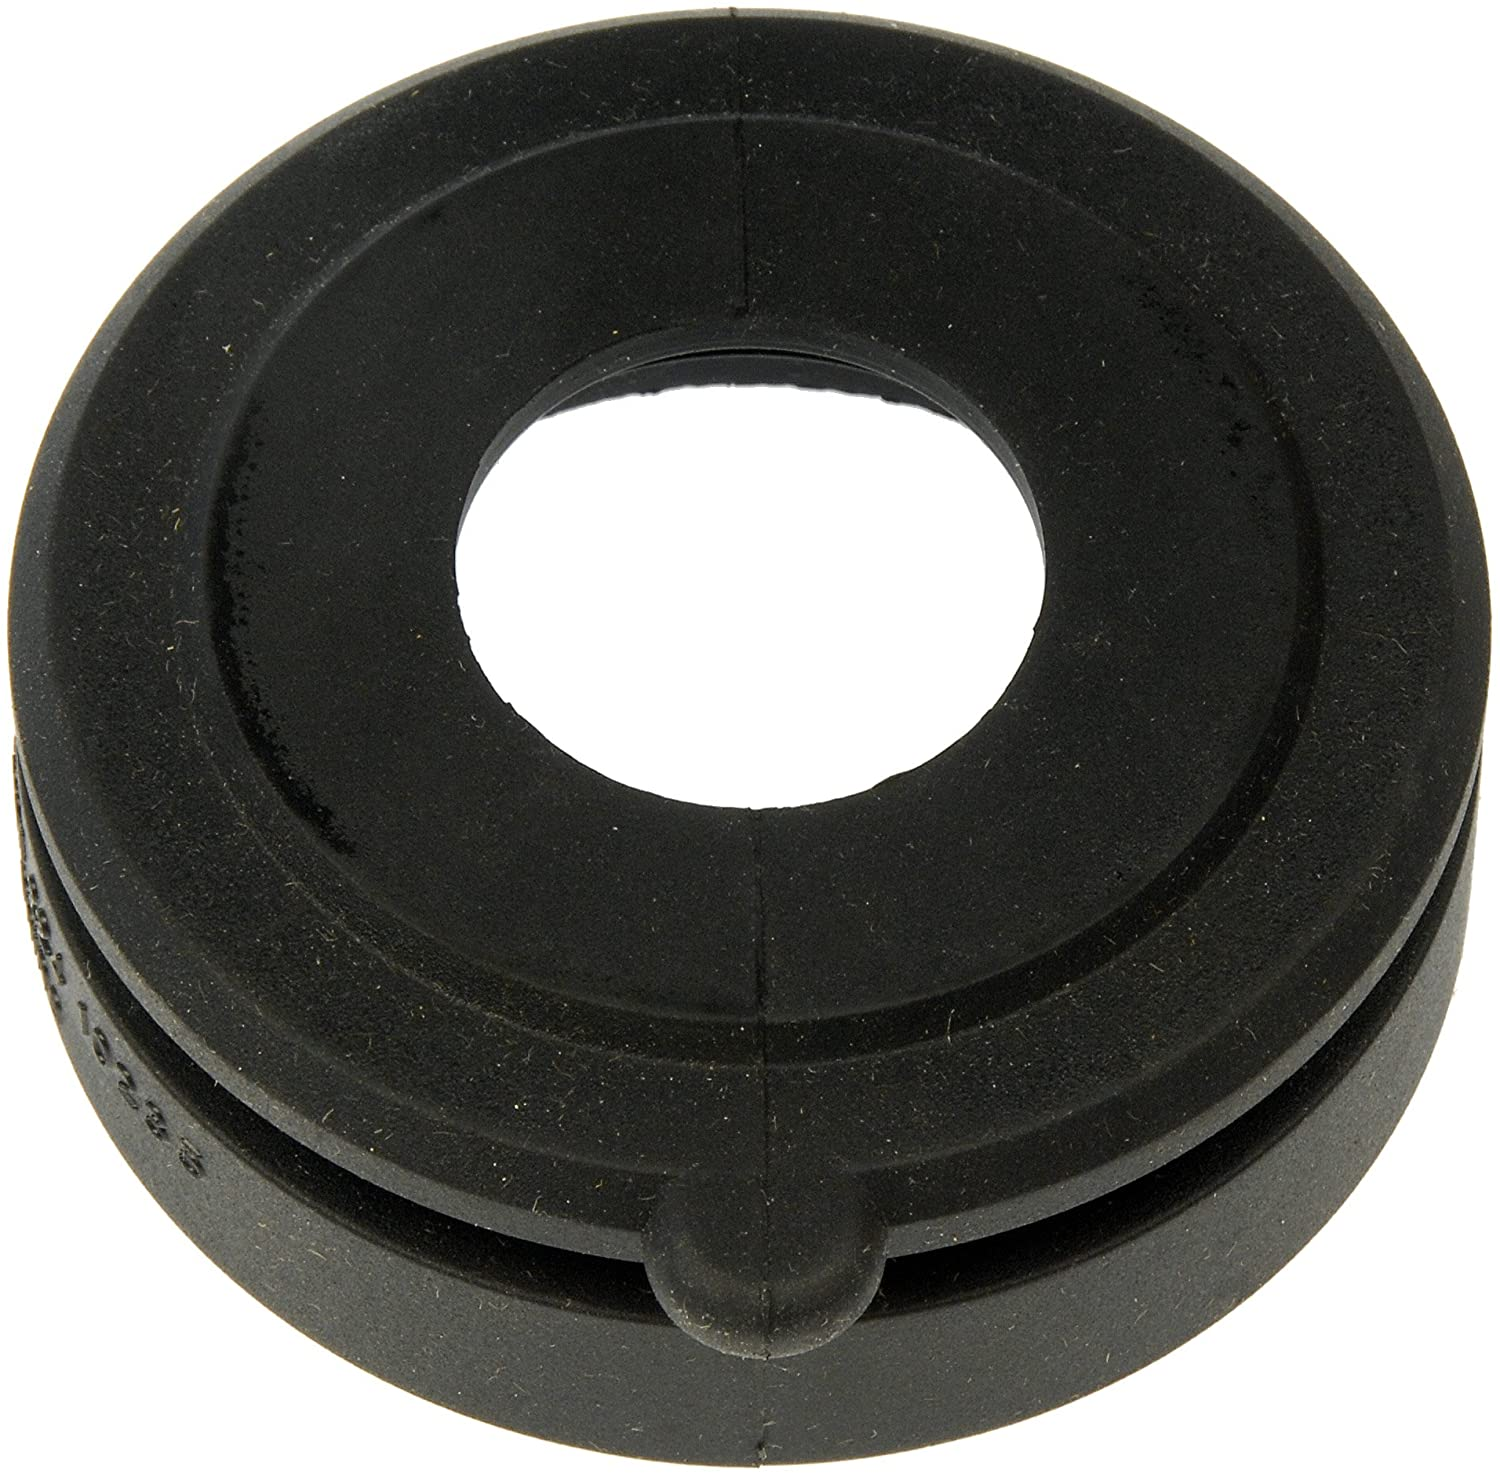 Fuel tank to filler pipe seal Type 25 to allow early tank to use plastic filler